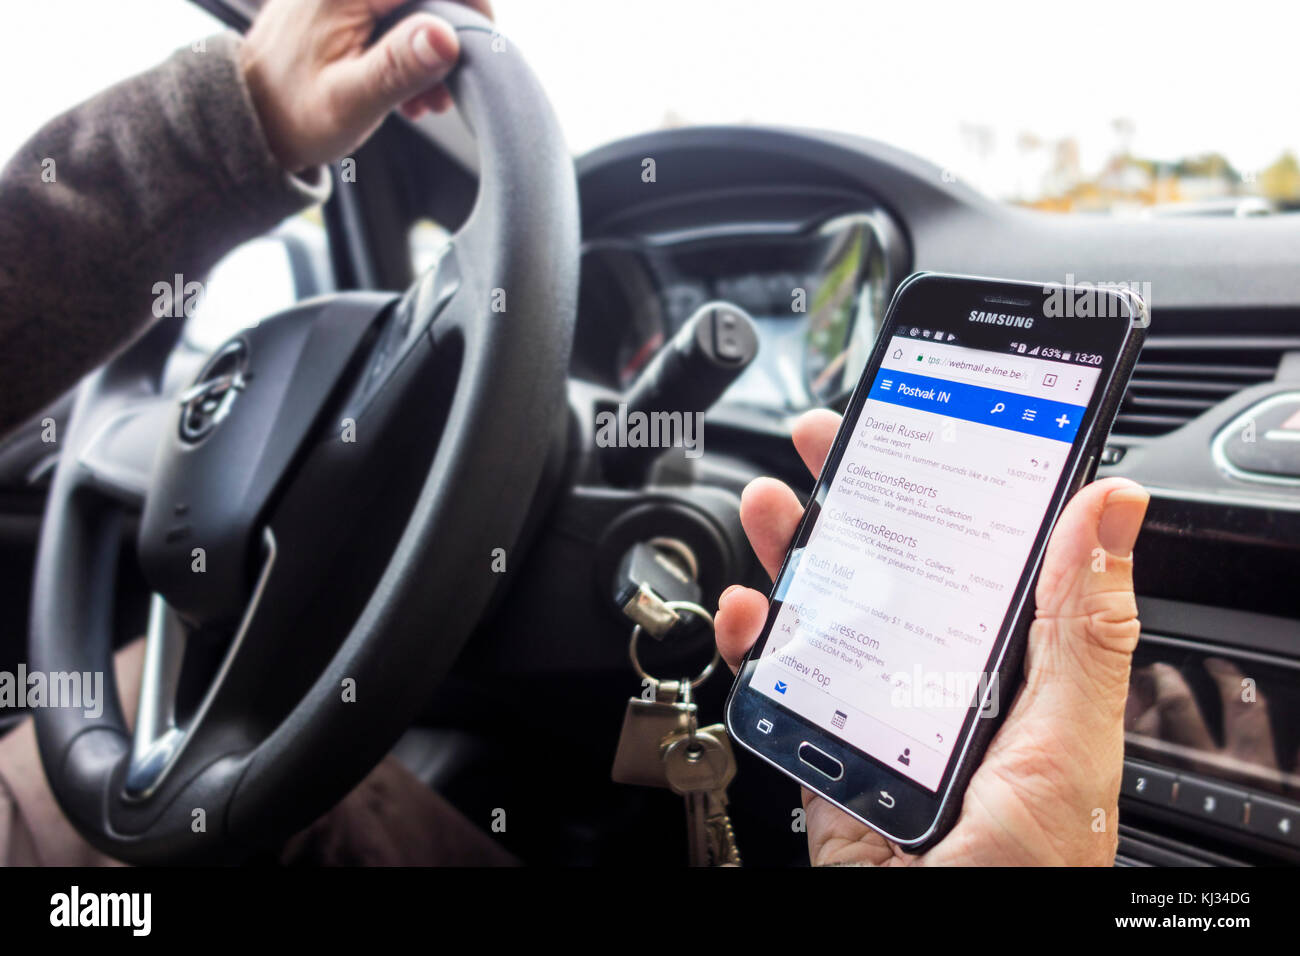 Irresponsible man at steering wheel checking messages on smart phone / smartphone / cellphone while driving car - Stock Image